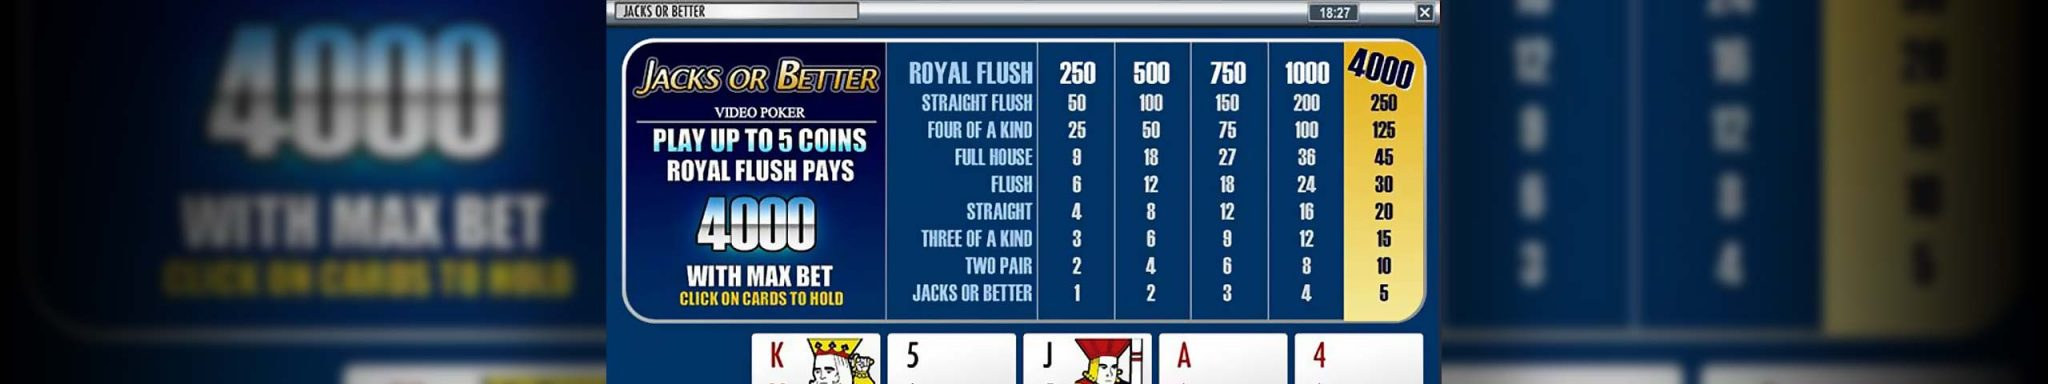 Video poker Jacks or Better, Rival Slider - Himmelspill.com